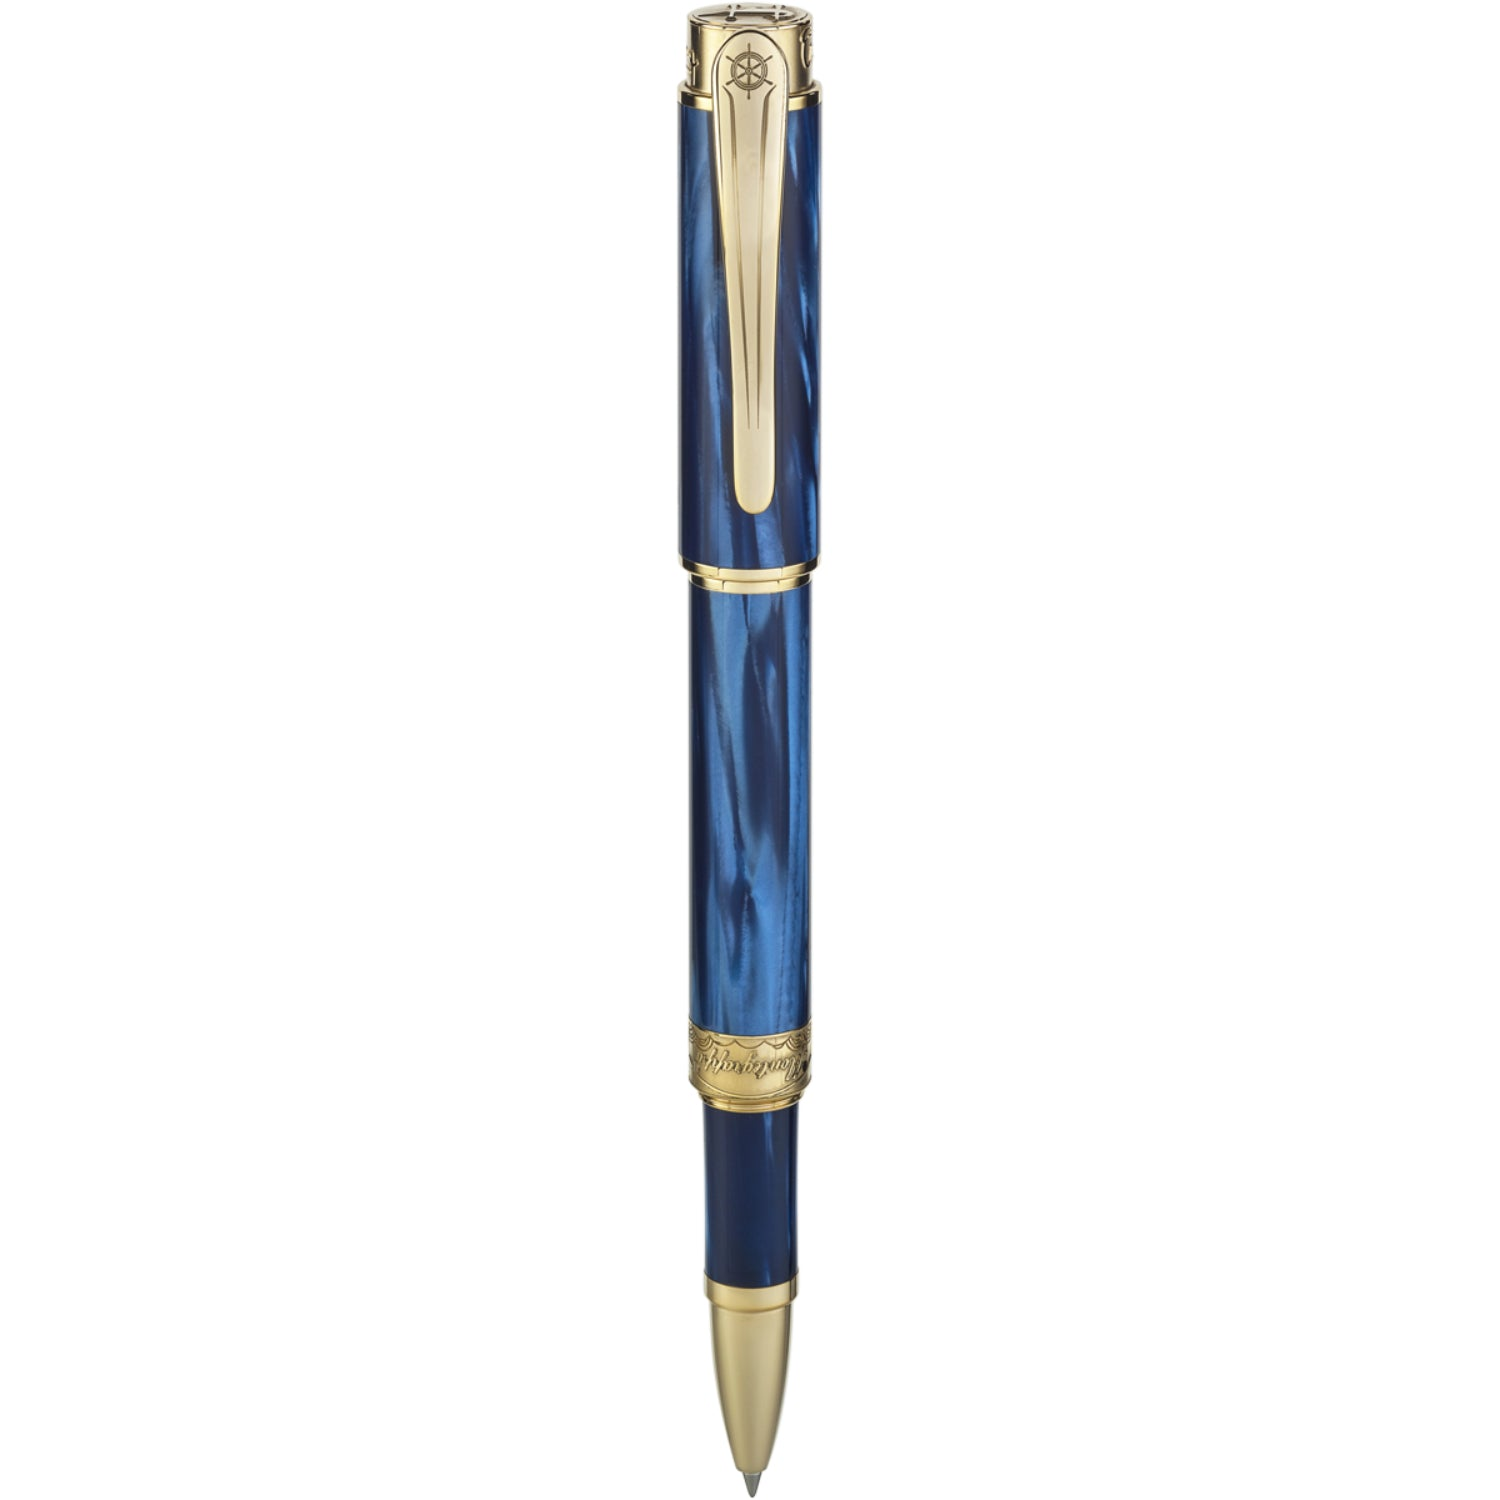 Hemingway : The Fisherman Rollerball Pen, Gold